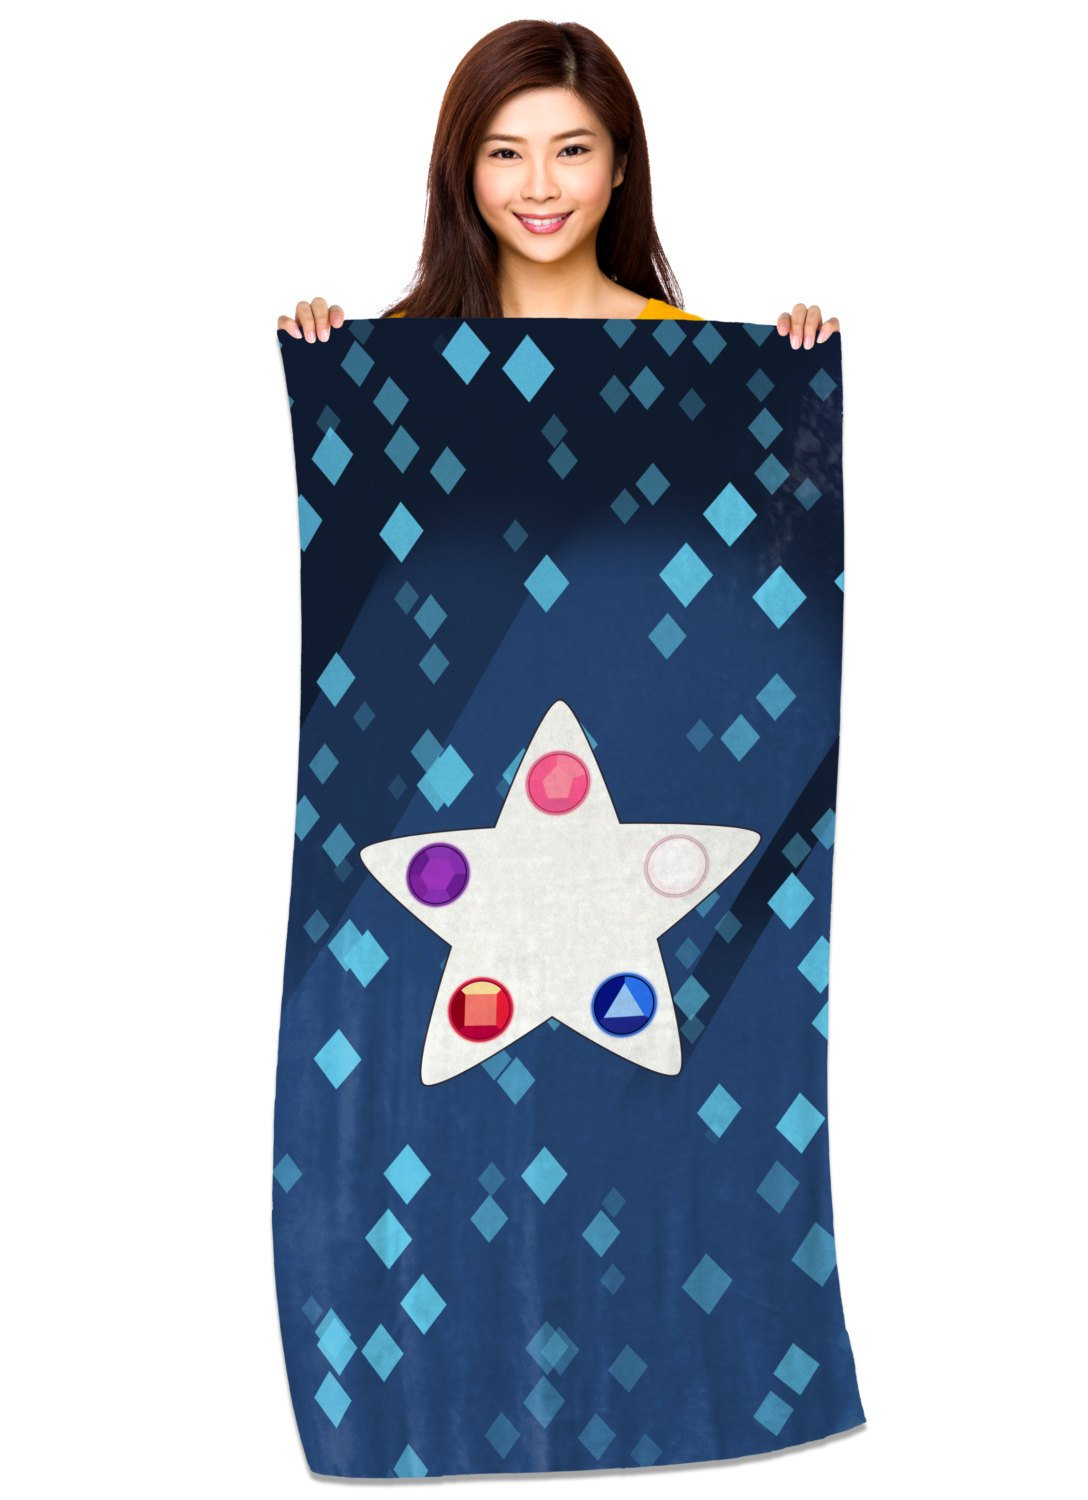 Crystal Gem Star - Microfiber Beach Towel